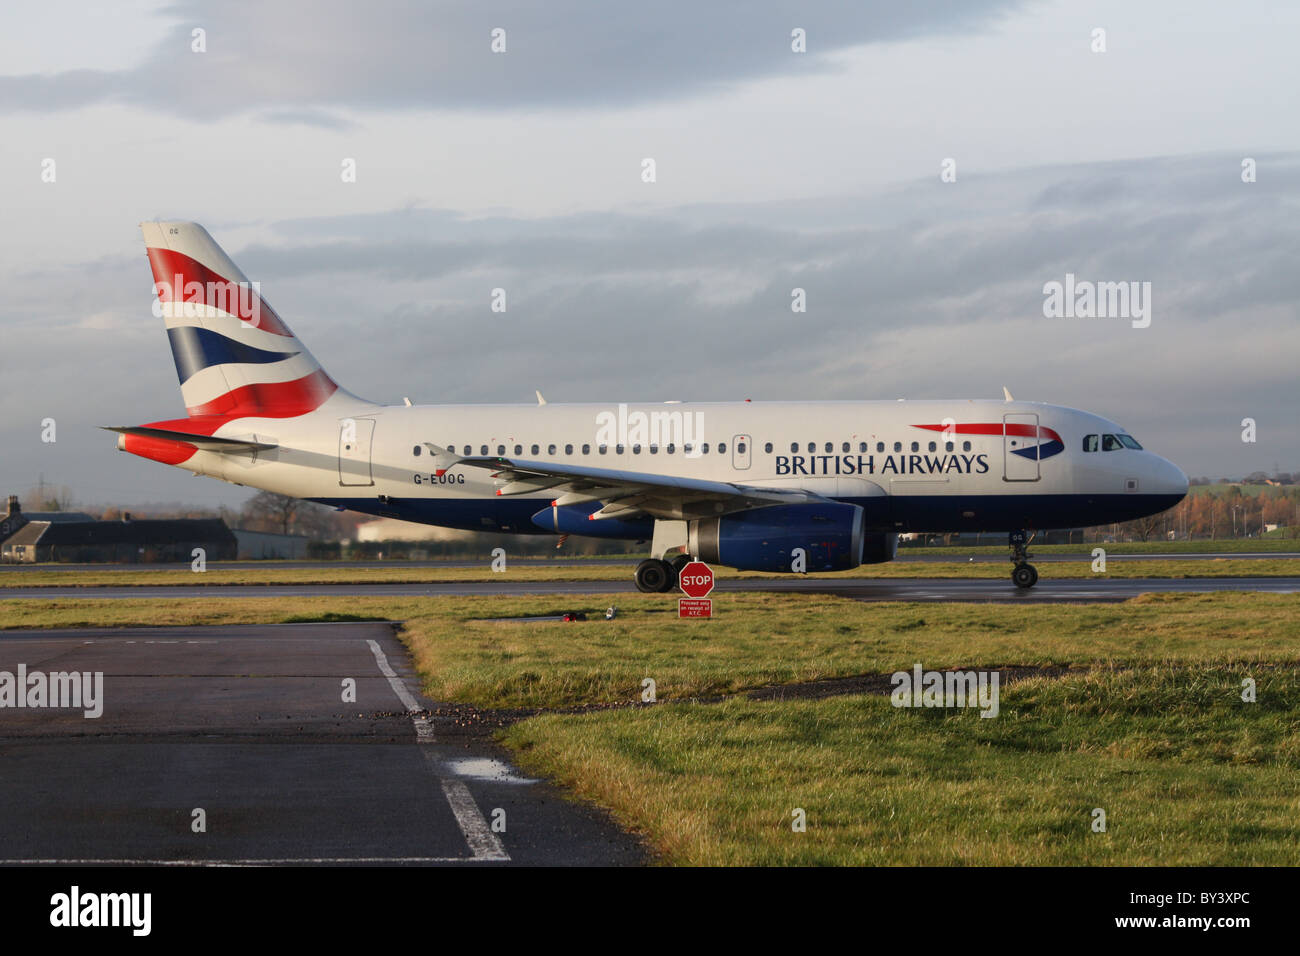 British Airways A319, G-EUOG,  taxying past at Glasgow Airport - Stock Image